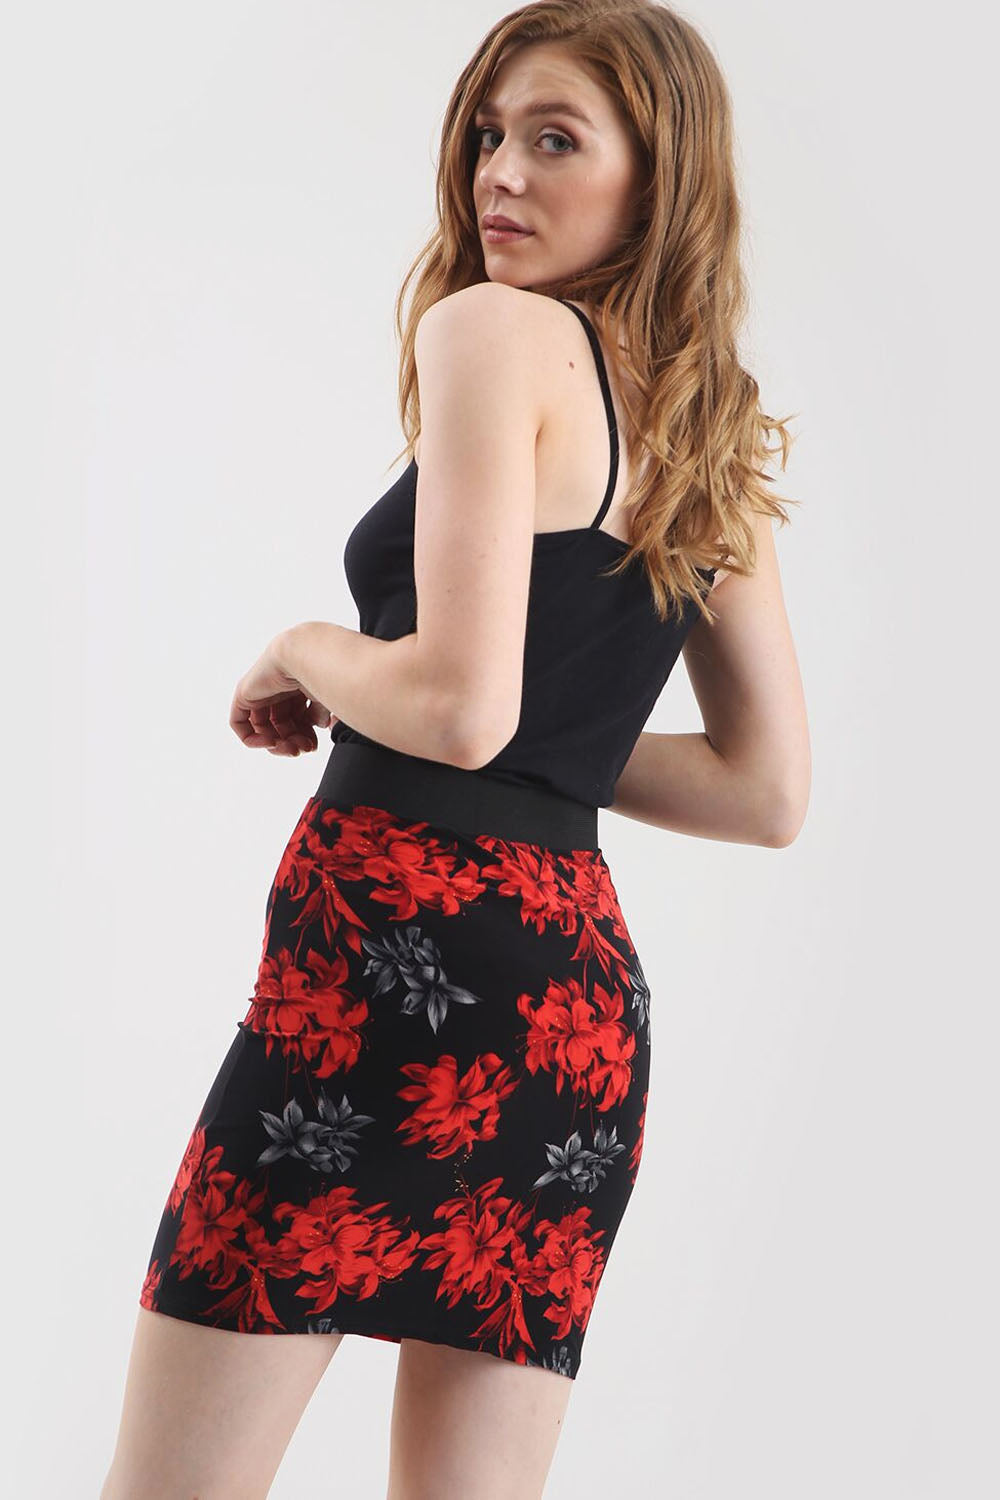 High Waisted Red Floral Print Mini Tube Skirt - bejealous-com